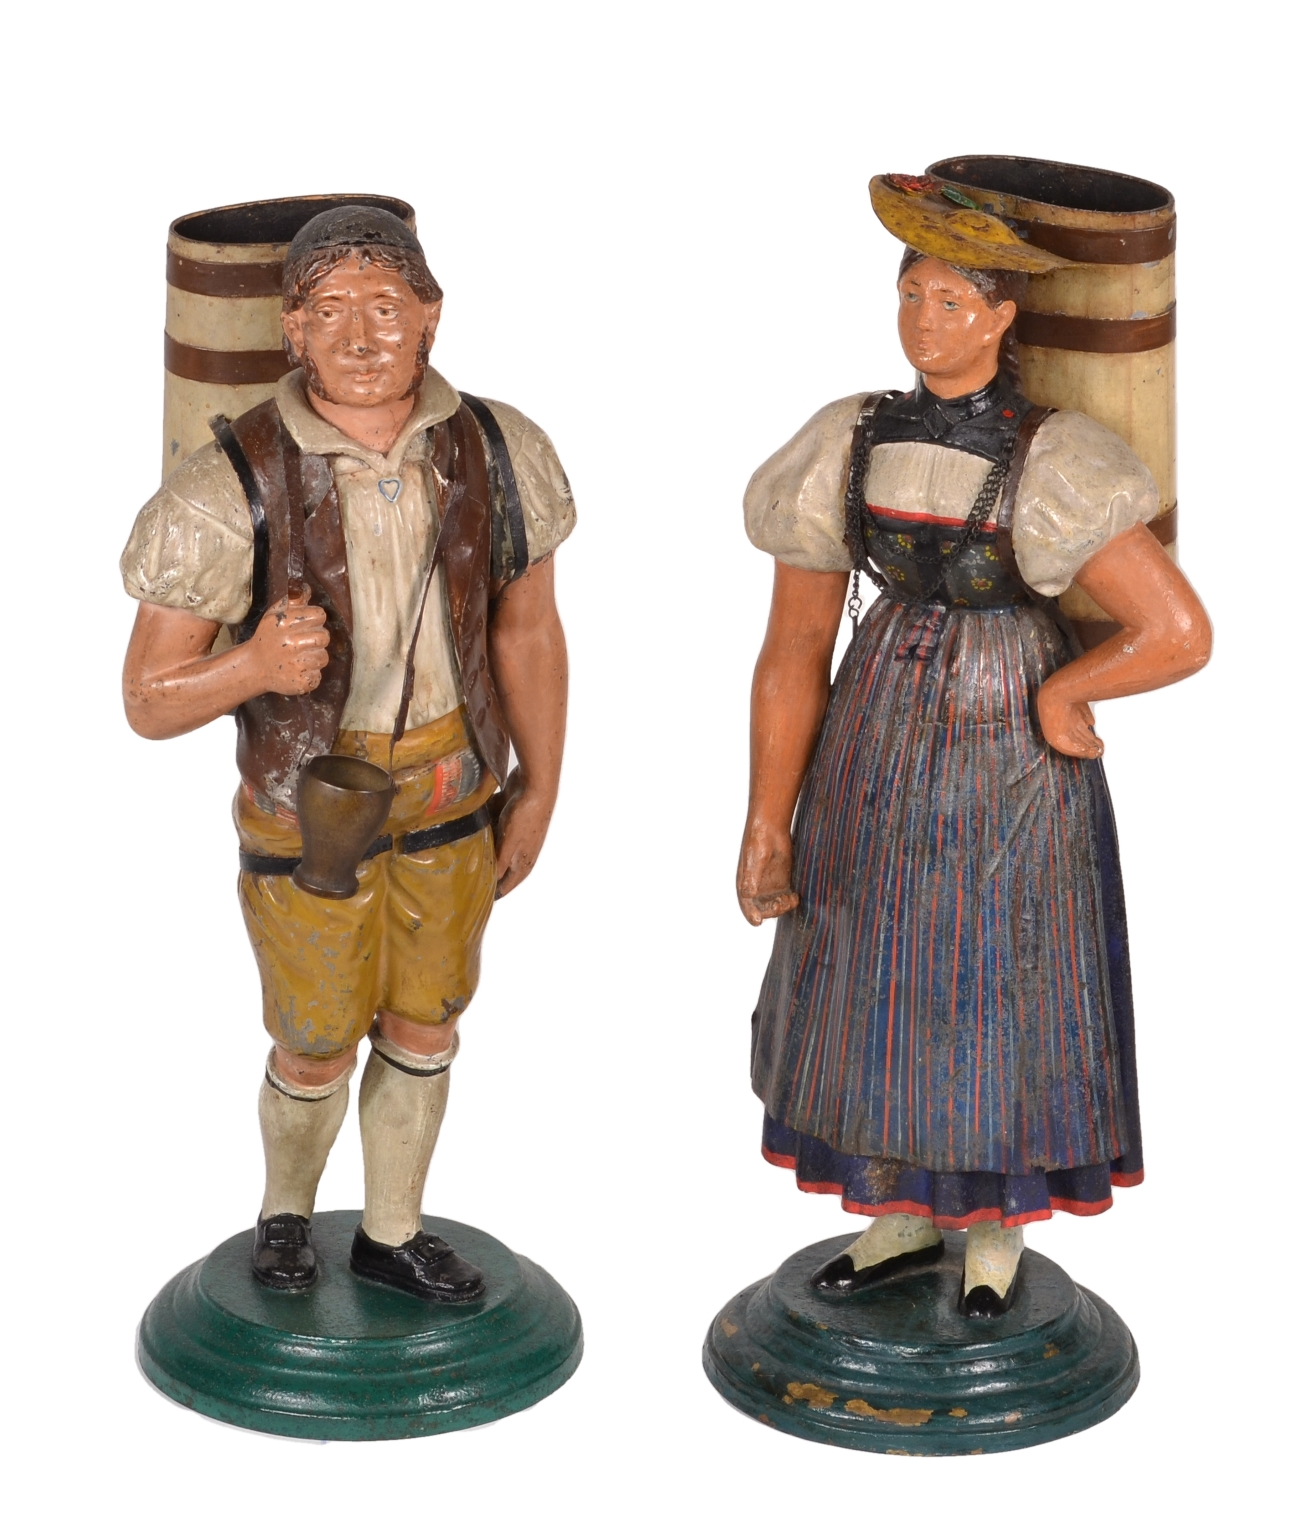 Pair of Tole Figures, c. 1820-40